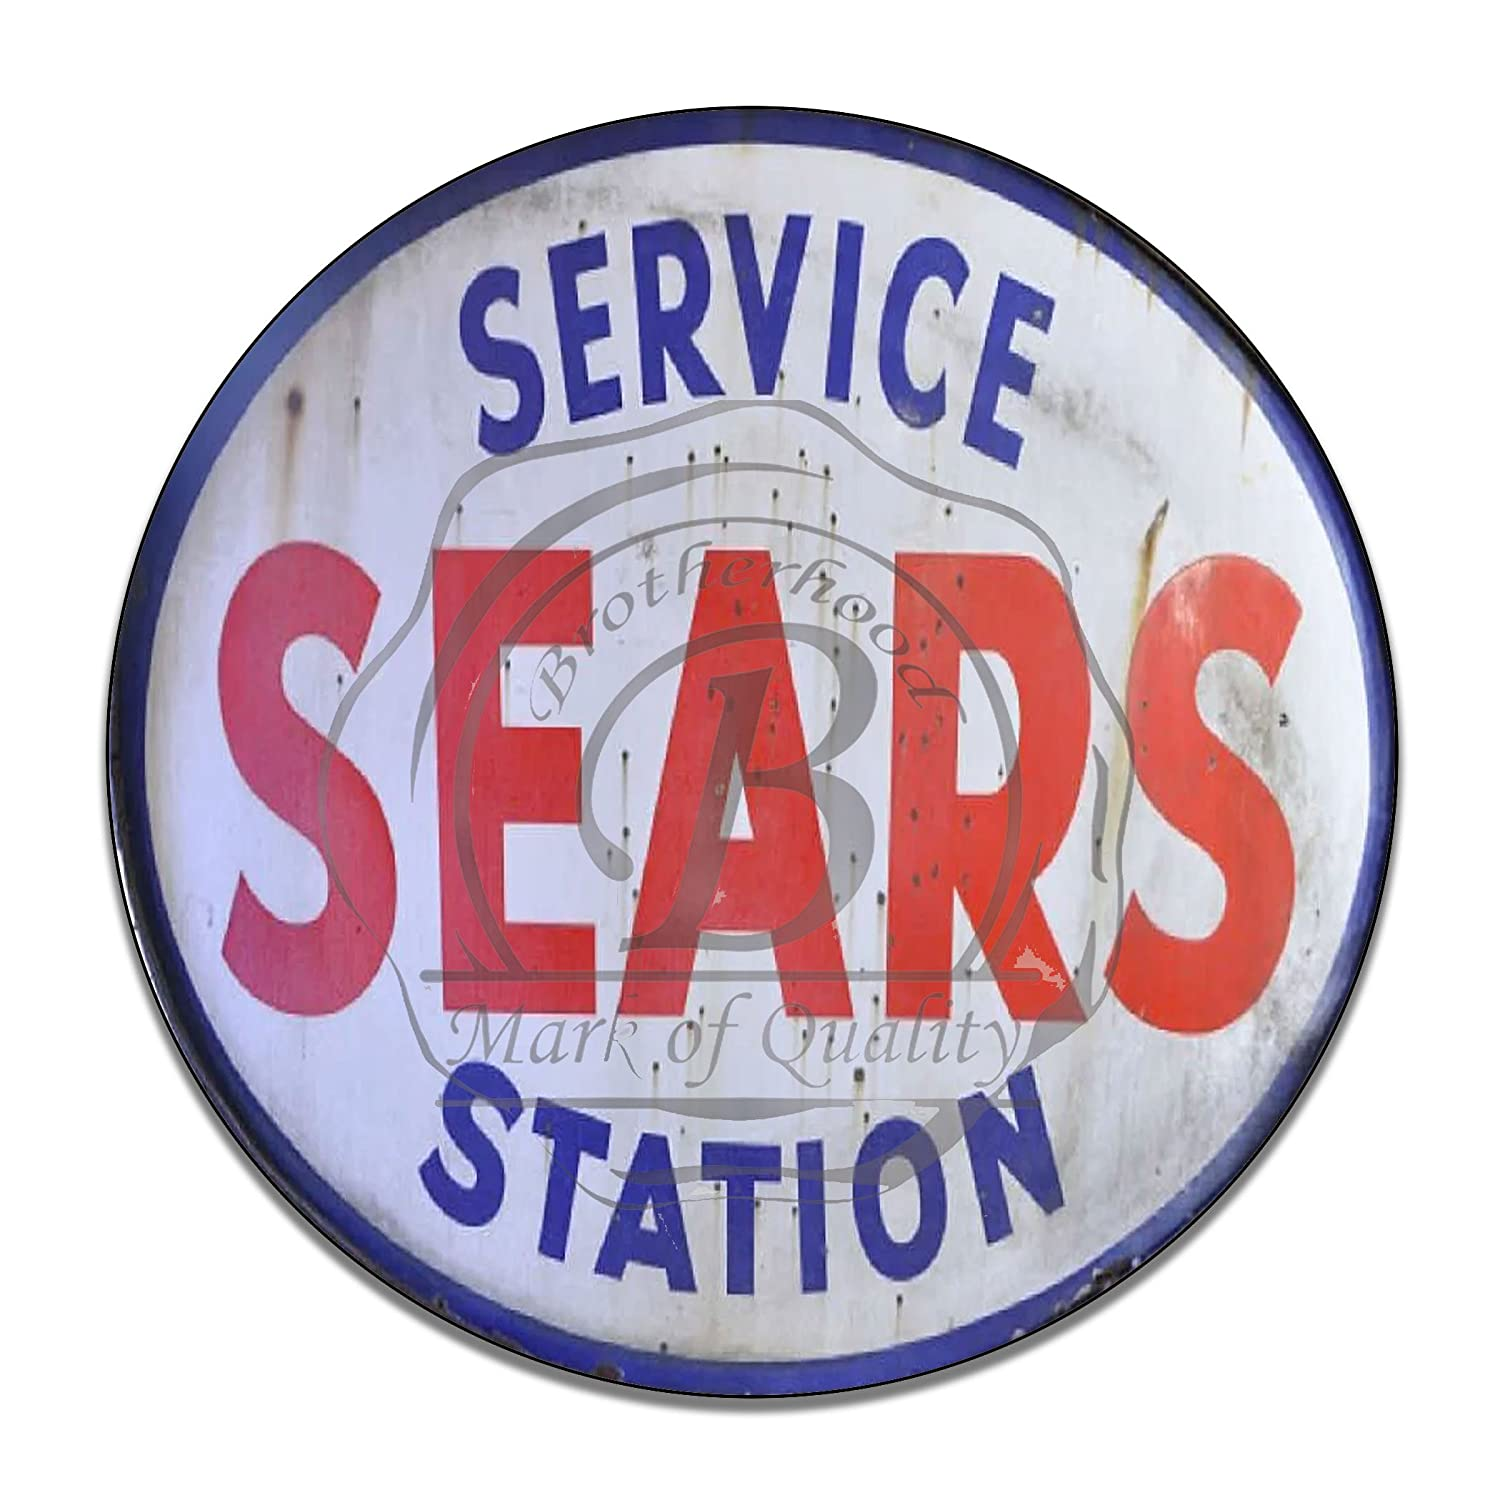 Car Brands Starting With L >> Brotherhood Vintage Gas Signs Reproduction Car Company Vintage Metal Signs Round Metal Tin Sign For Garage Home Decor Sears Service Station